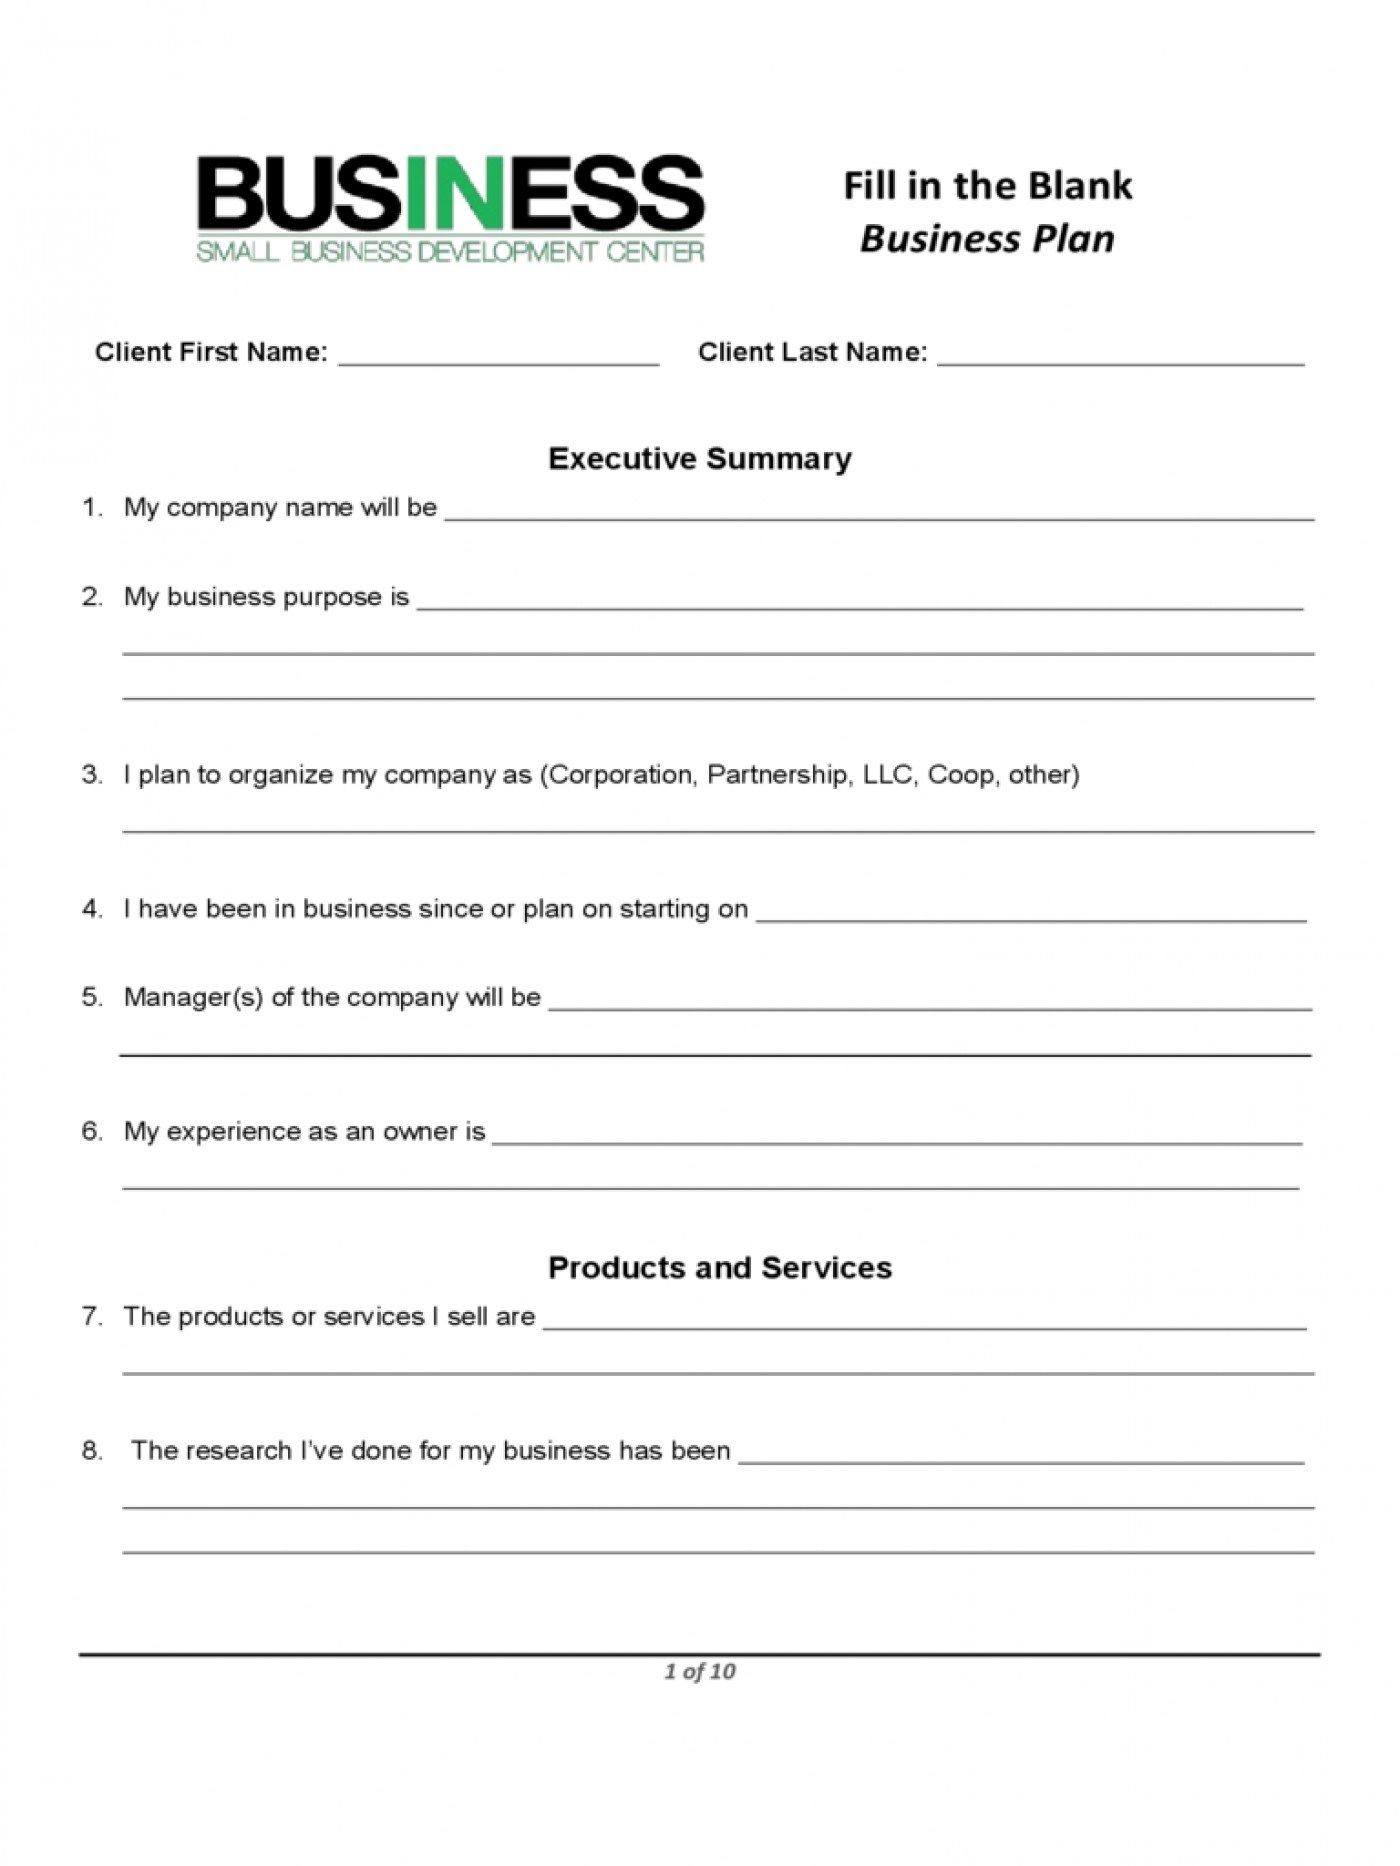 Business Plan For Kids I Hope This Business Plan Worksheet Helps Your Kids And Mine Disse Writing A Business Plan Business Plan Template Business Checklist